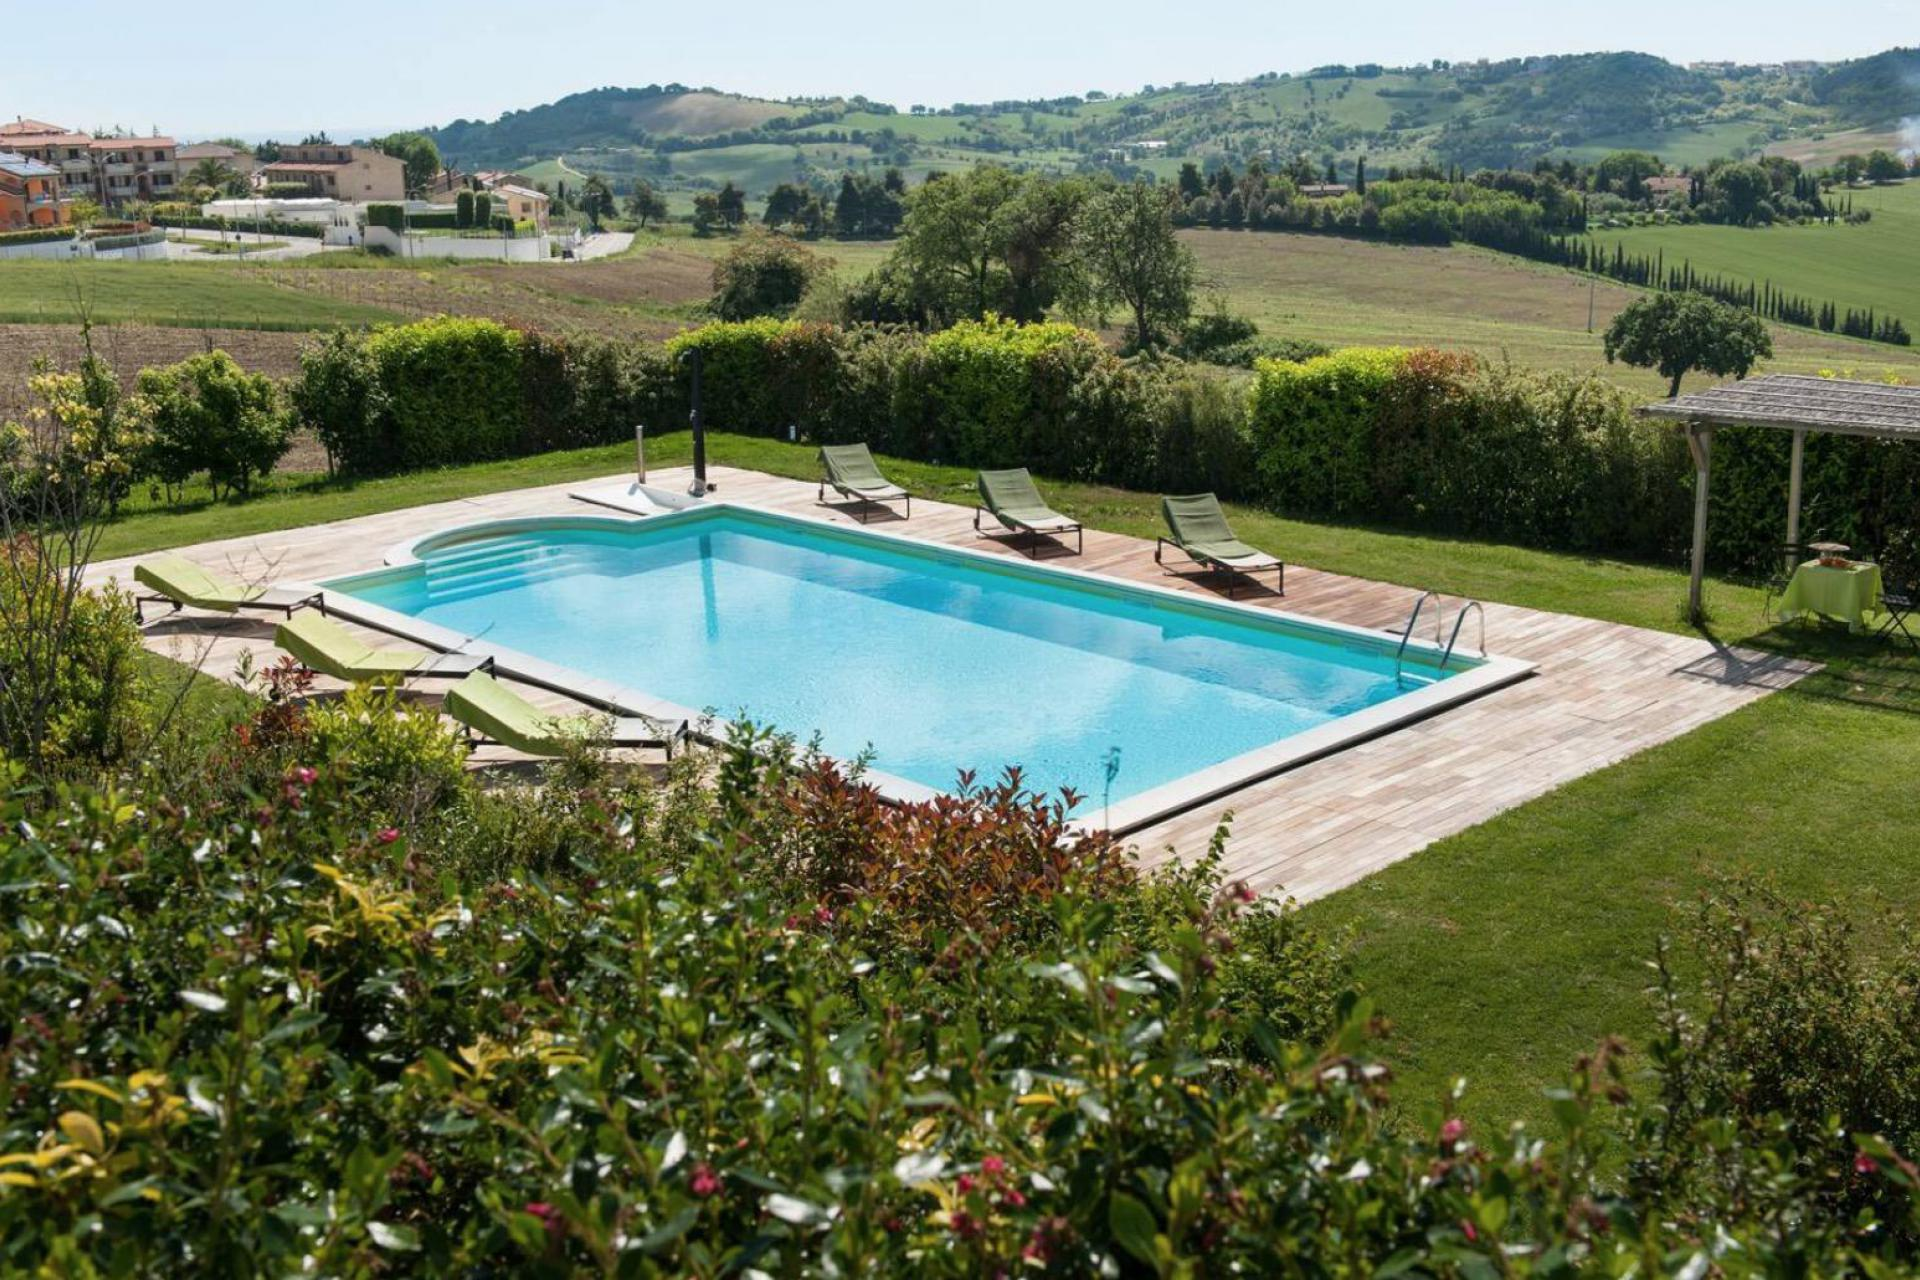 Agriturismo Marche Stylish agriturismo Marche with amazing views